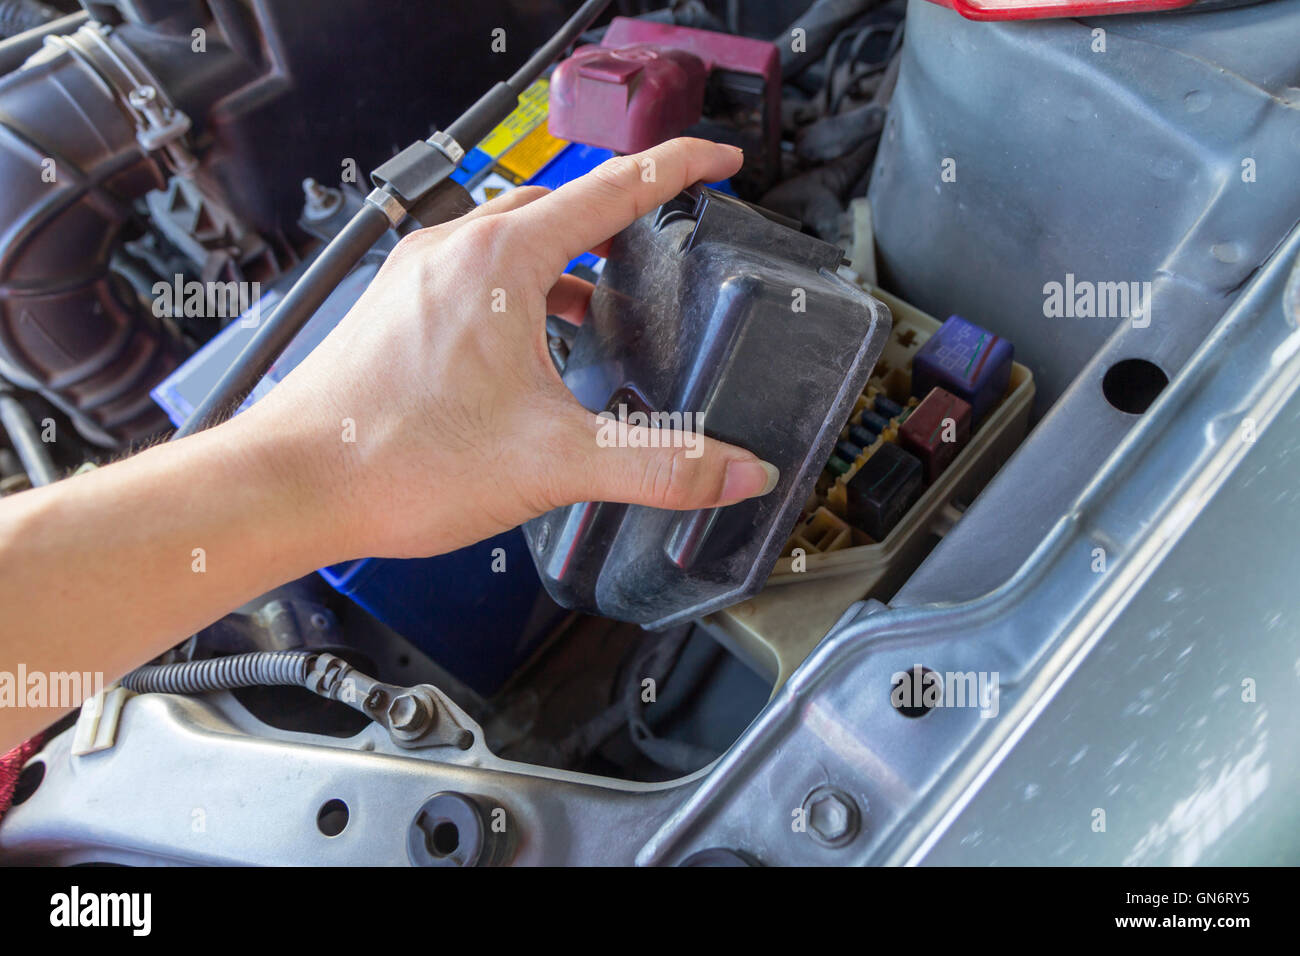 the man opening fuse box of old car - stock image